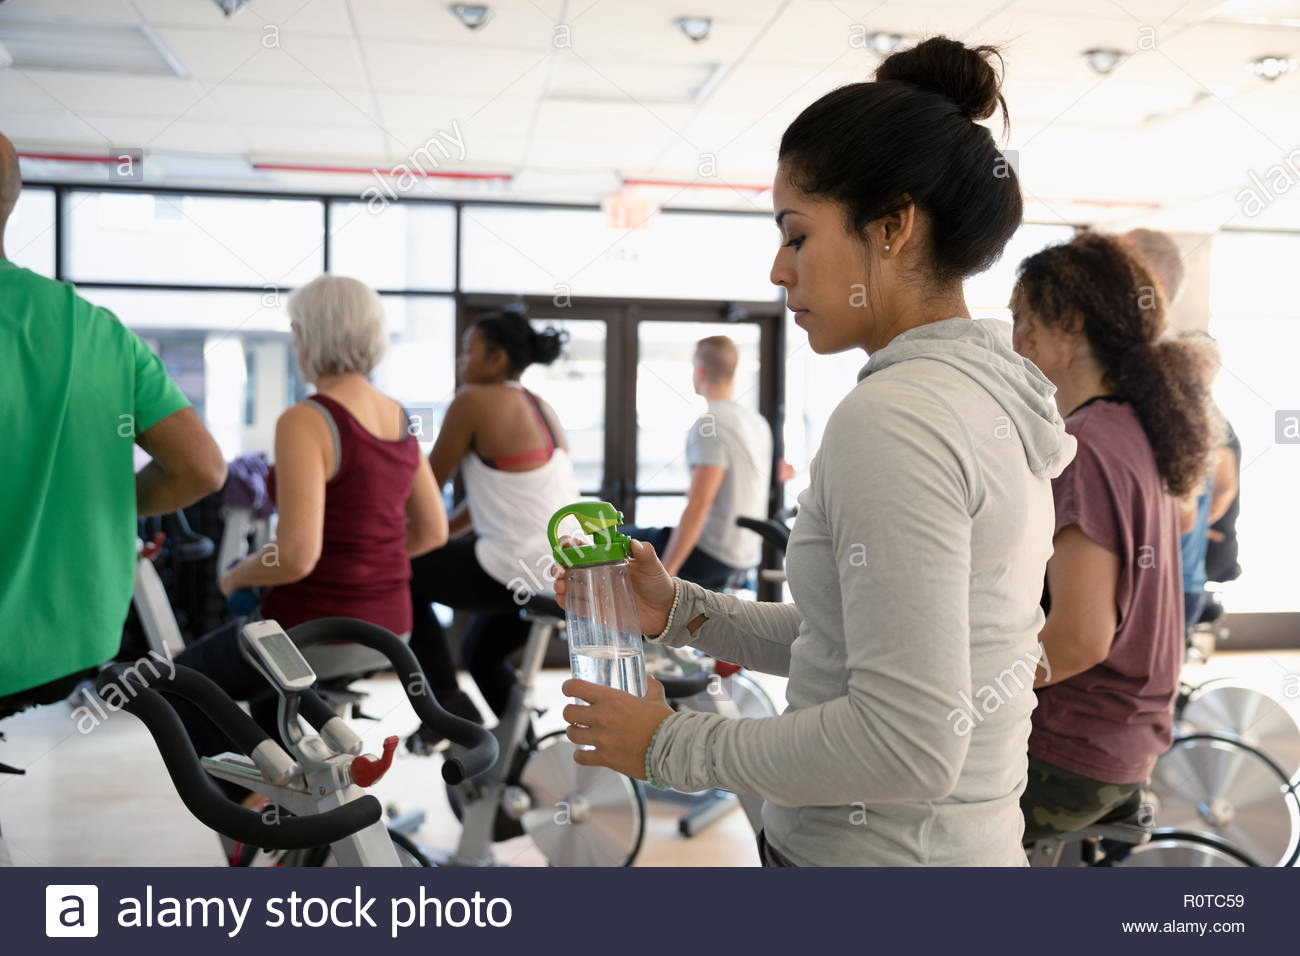 Woman with water bottle preparing for spin class in gym - Stock Image